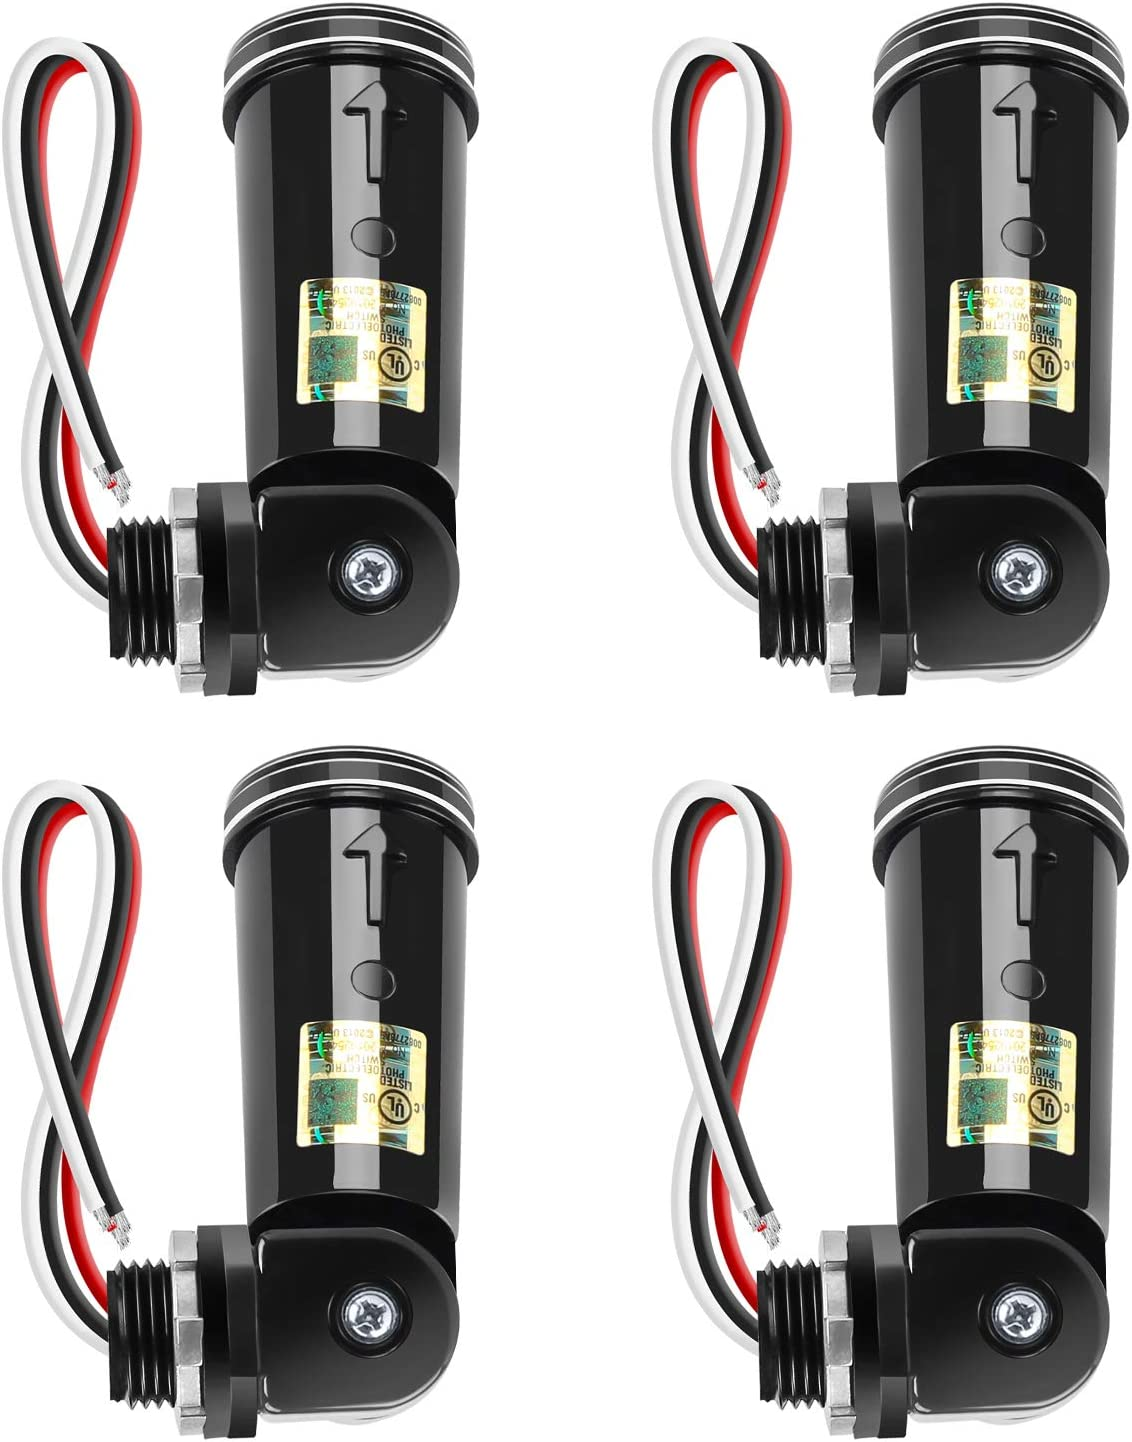 4 Pack Photocell Sensor Switch Outdoor Listed UL 55% OFF Conduit Lighti security